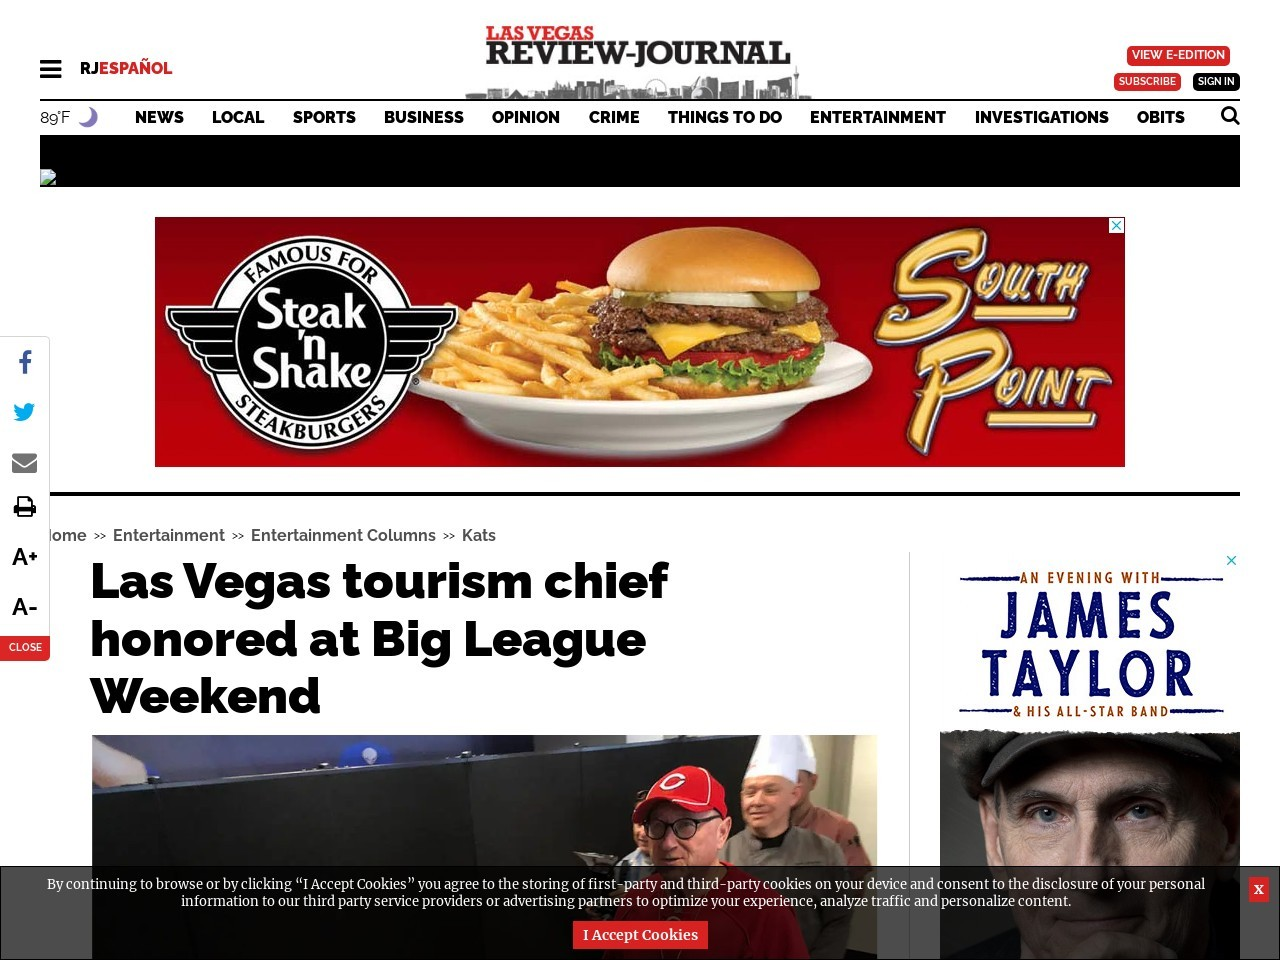 Las Vegas tourism chief honored at Big League Weekend